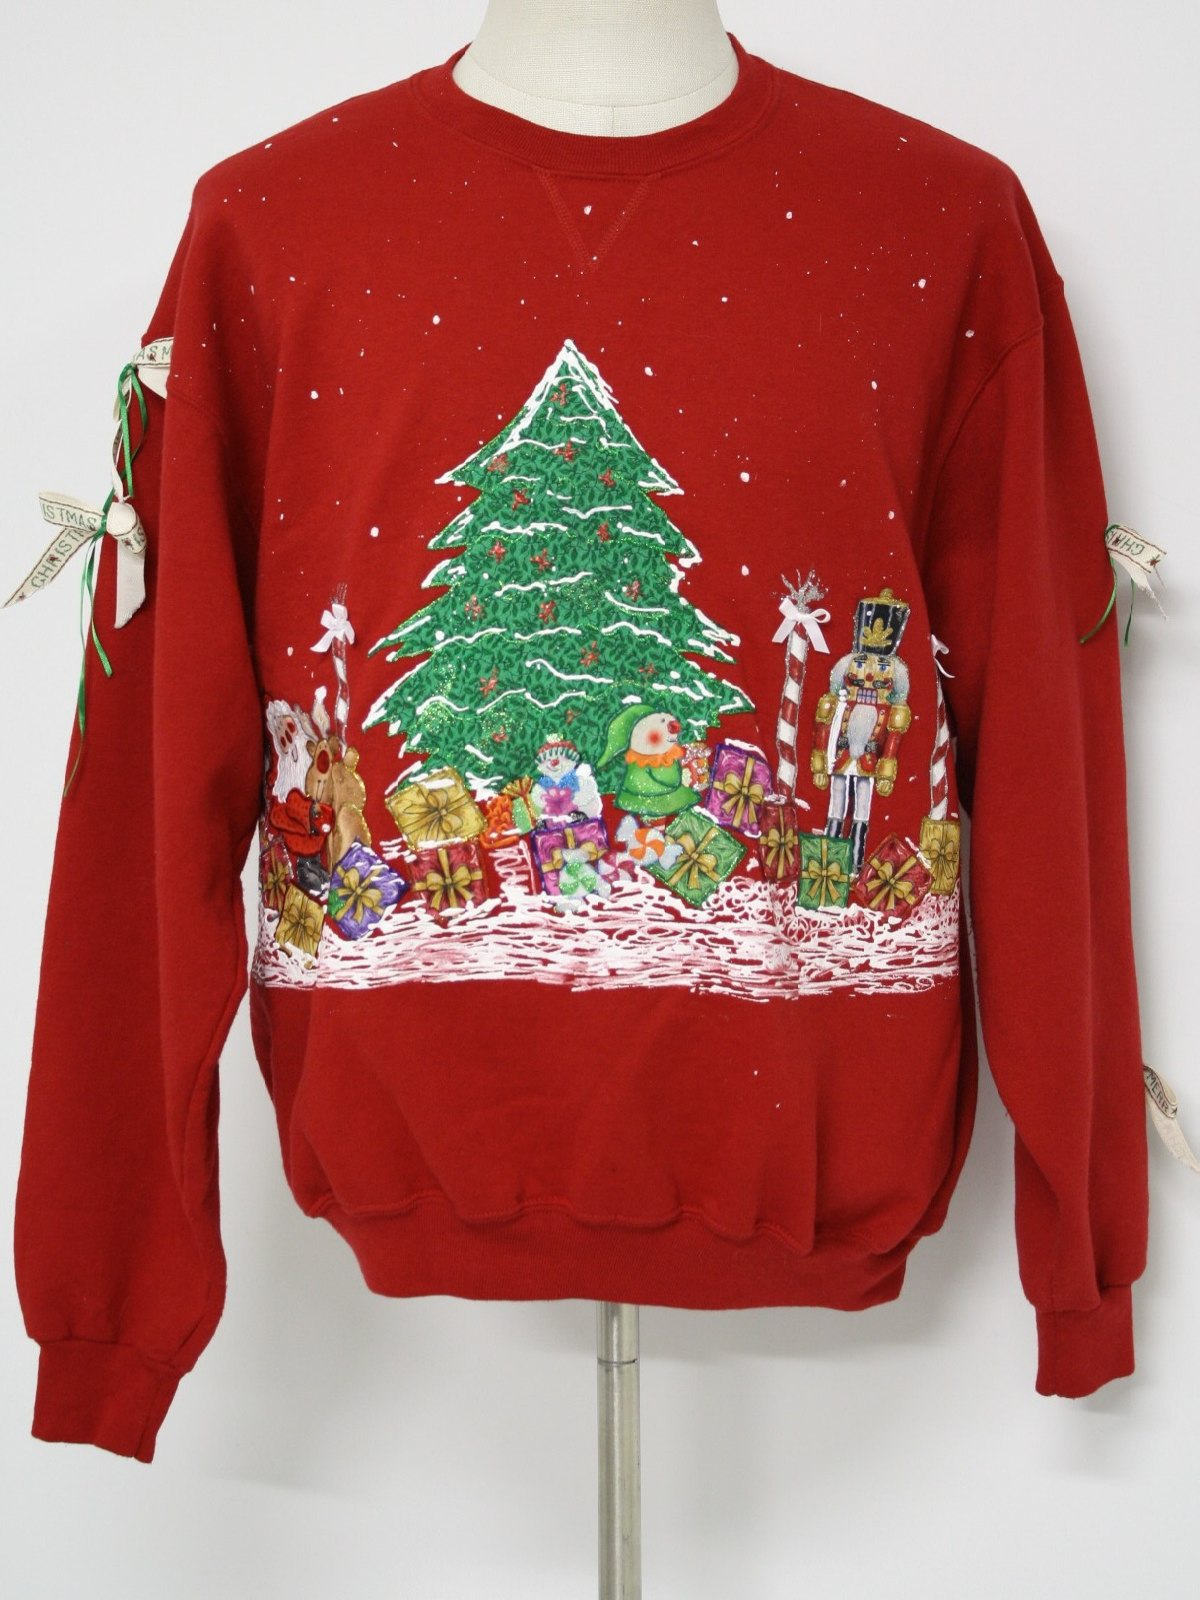 Ugly Christmas Sweatshirt Fruit of the Loom Unisex red